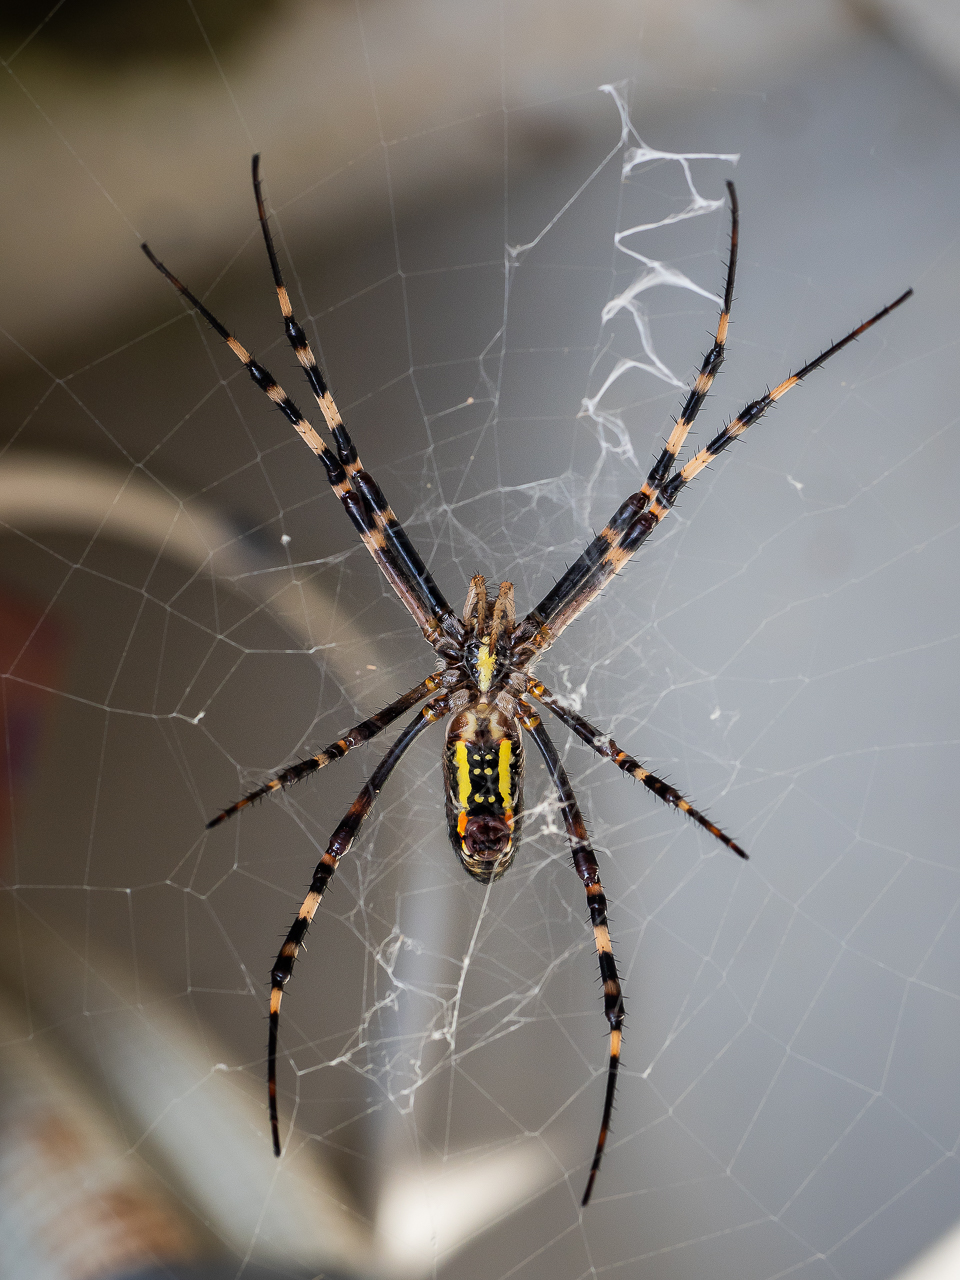 A Jorō spider (Nephila clavata), a member of the golden orb web family, seen in Yakushima, Japan.